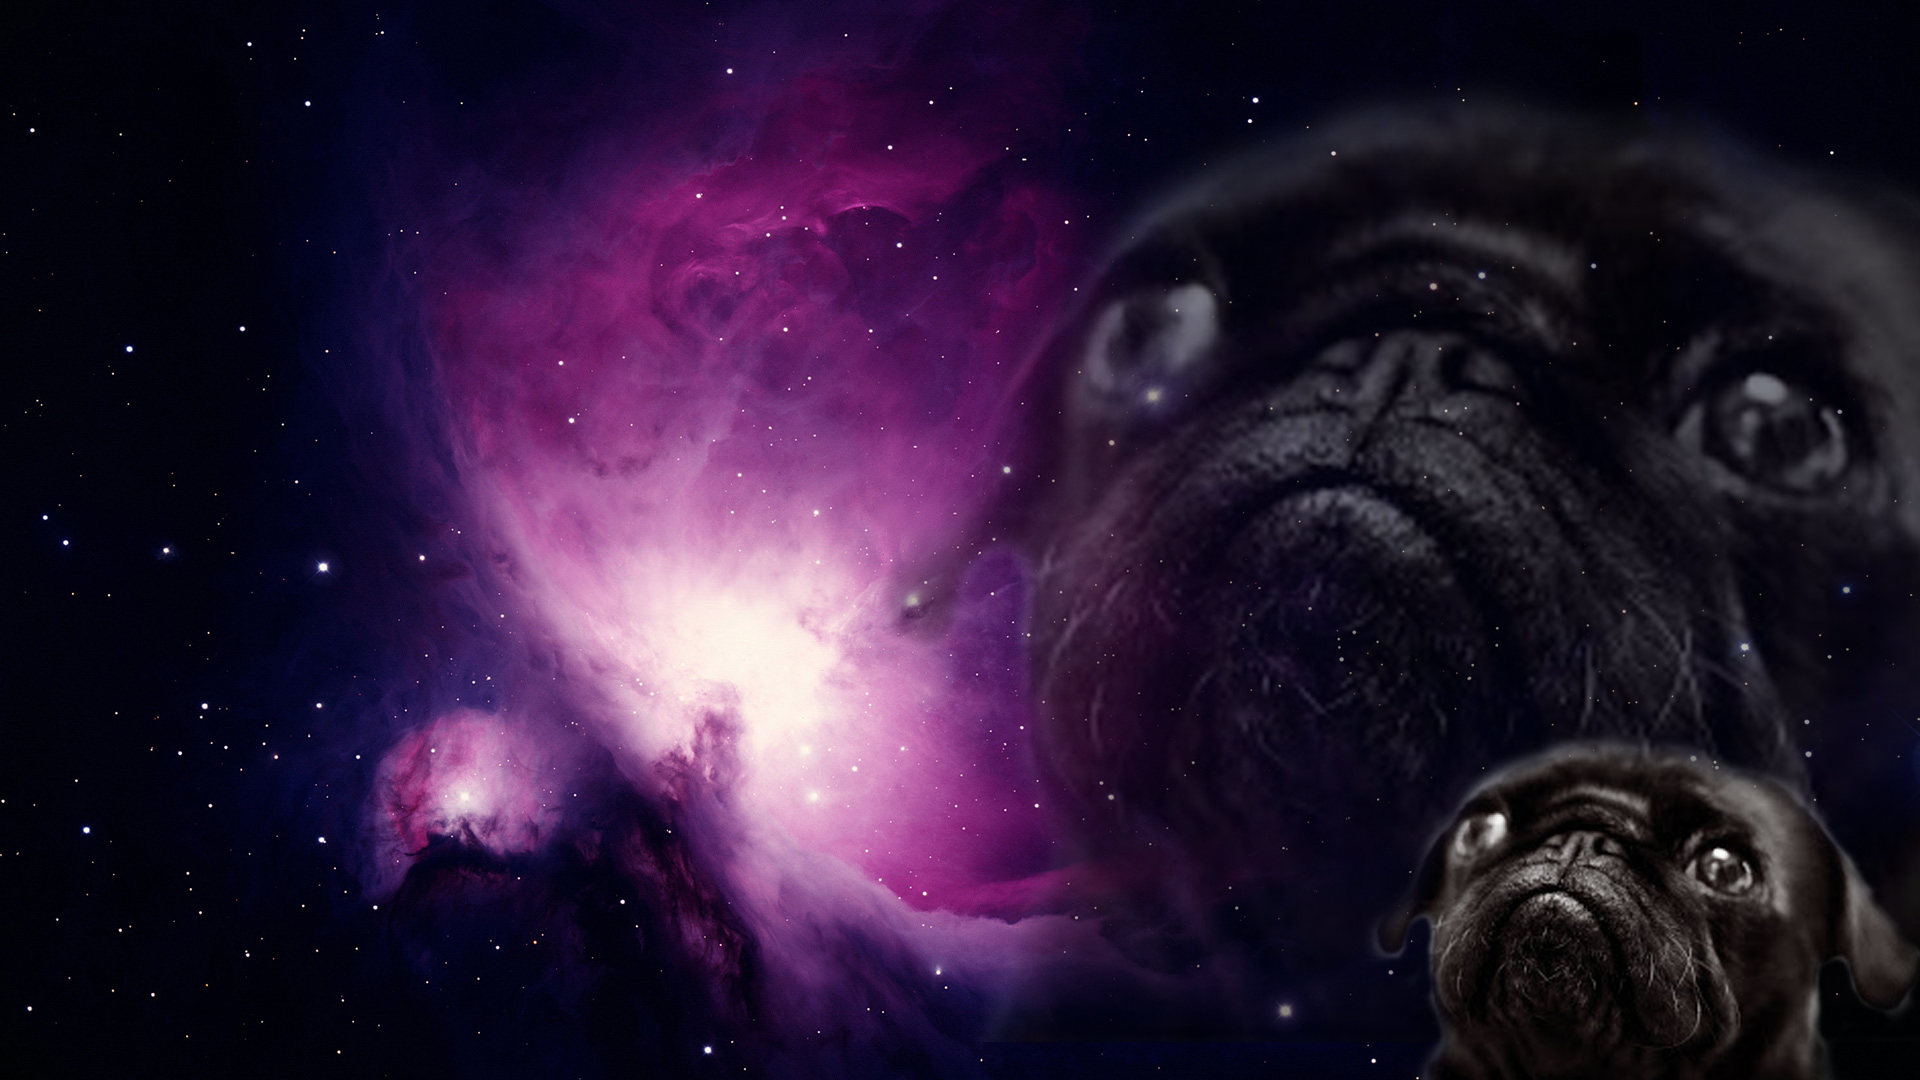 Free Download Sloth In Space Wallpaper Sloth In Space Live Slow